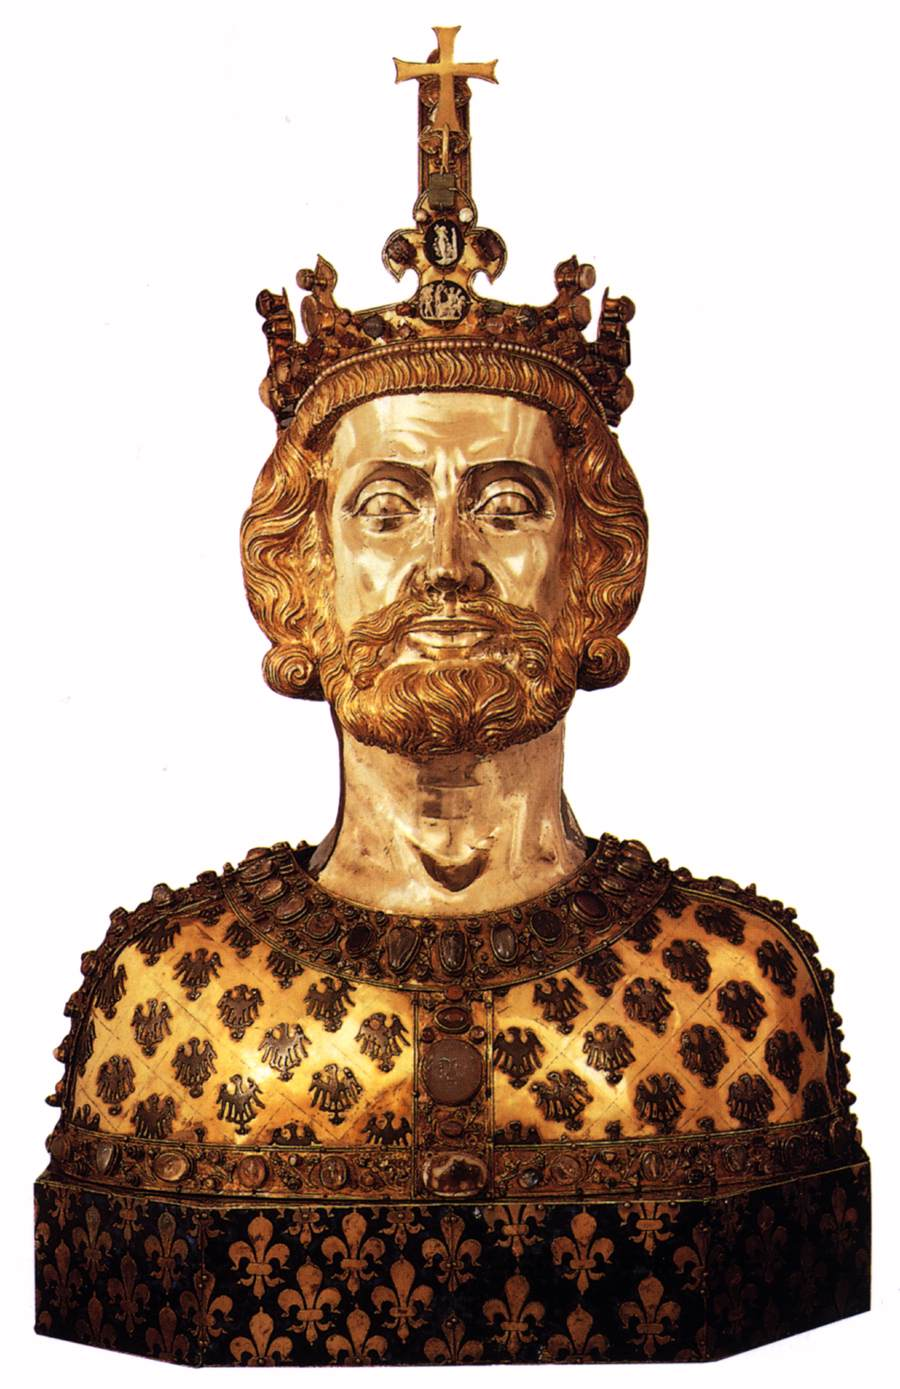 Bust reliquary of Charlemagne